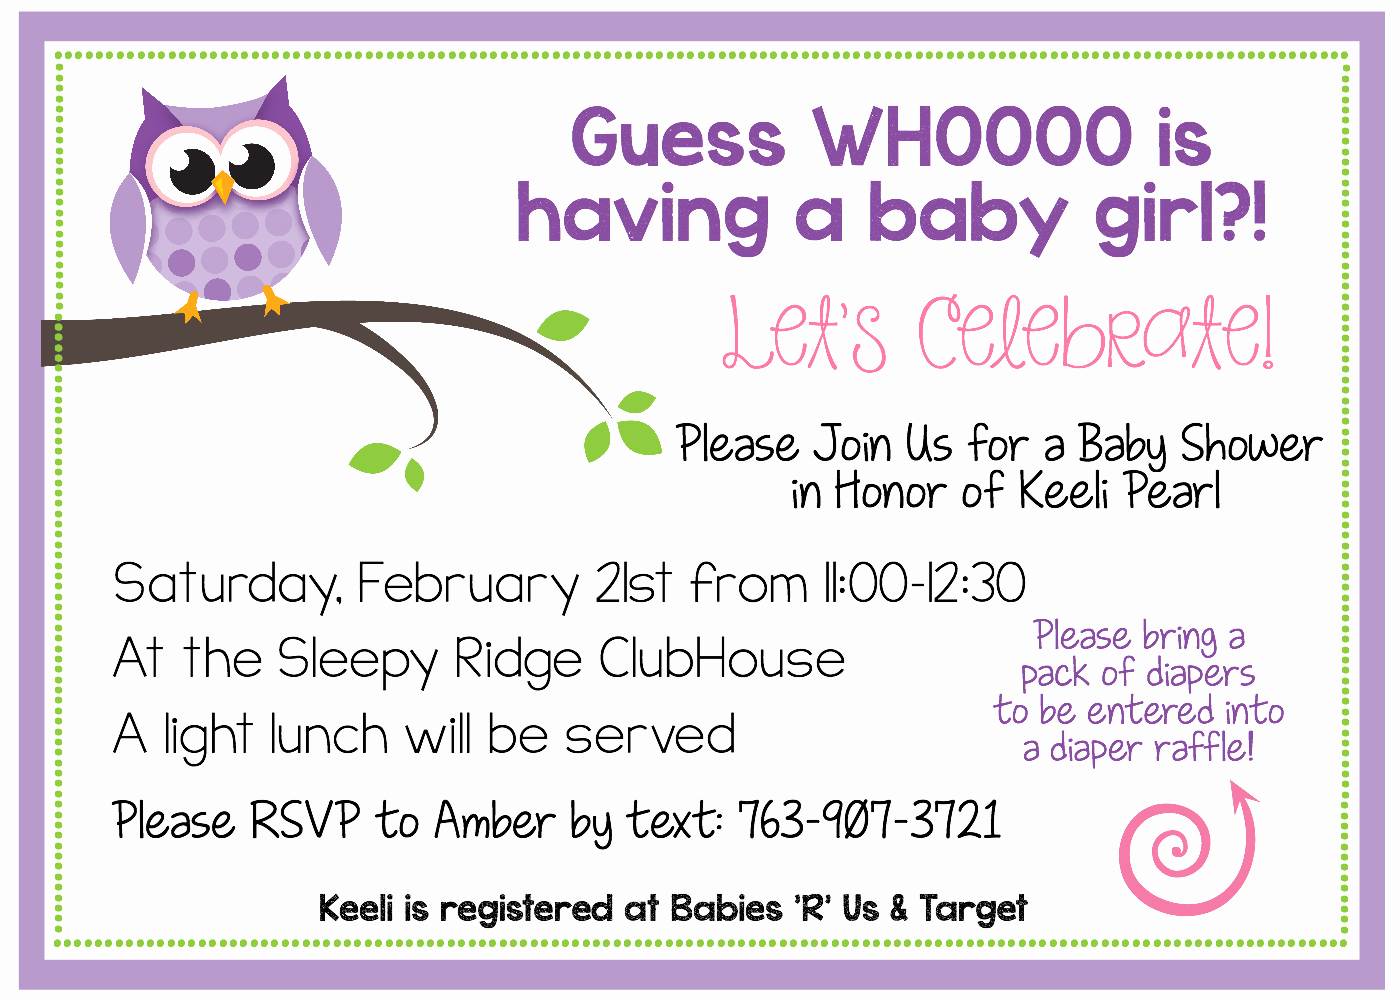 Baby Shower Invitation Text Awesome Free Printable Owl Baby Shower Invitations & Other